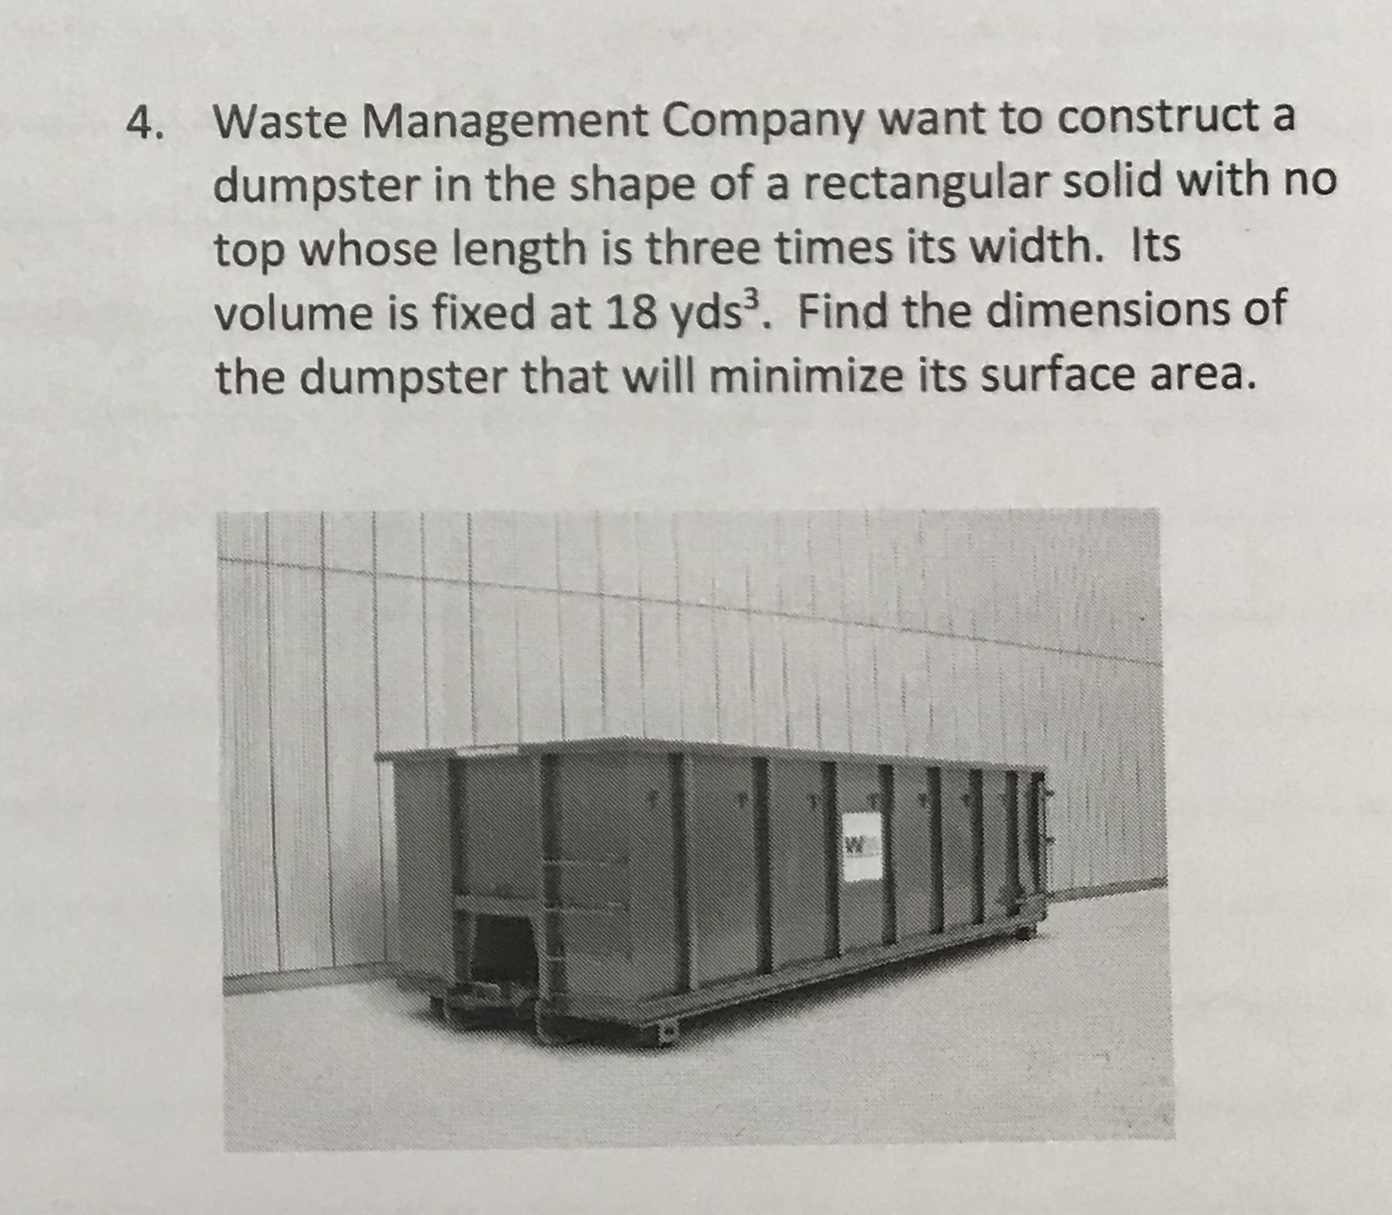 Waste Management Company want to construct a dumpster in the shape of a rectangular solid with no top whose length is three times its width. Its volume is fixed at 18 yds. Find the dimensions of the dumpster that will minimize its surface area. 4.